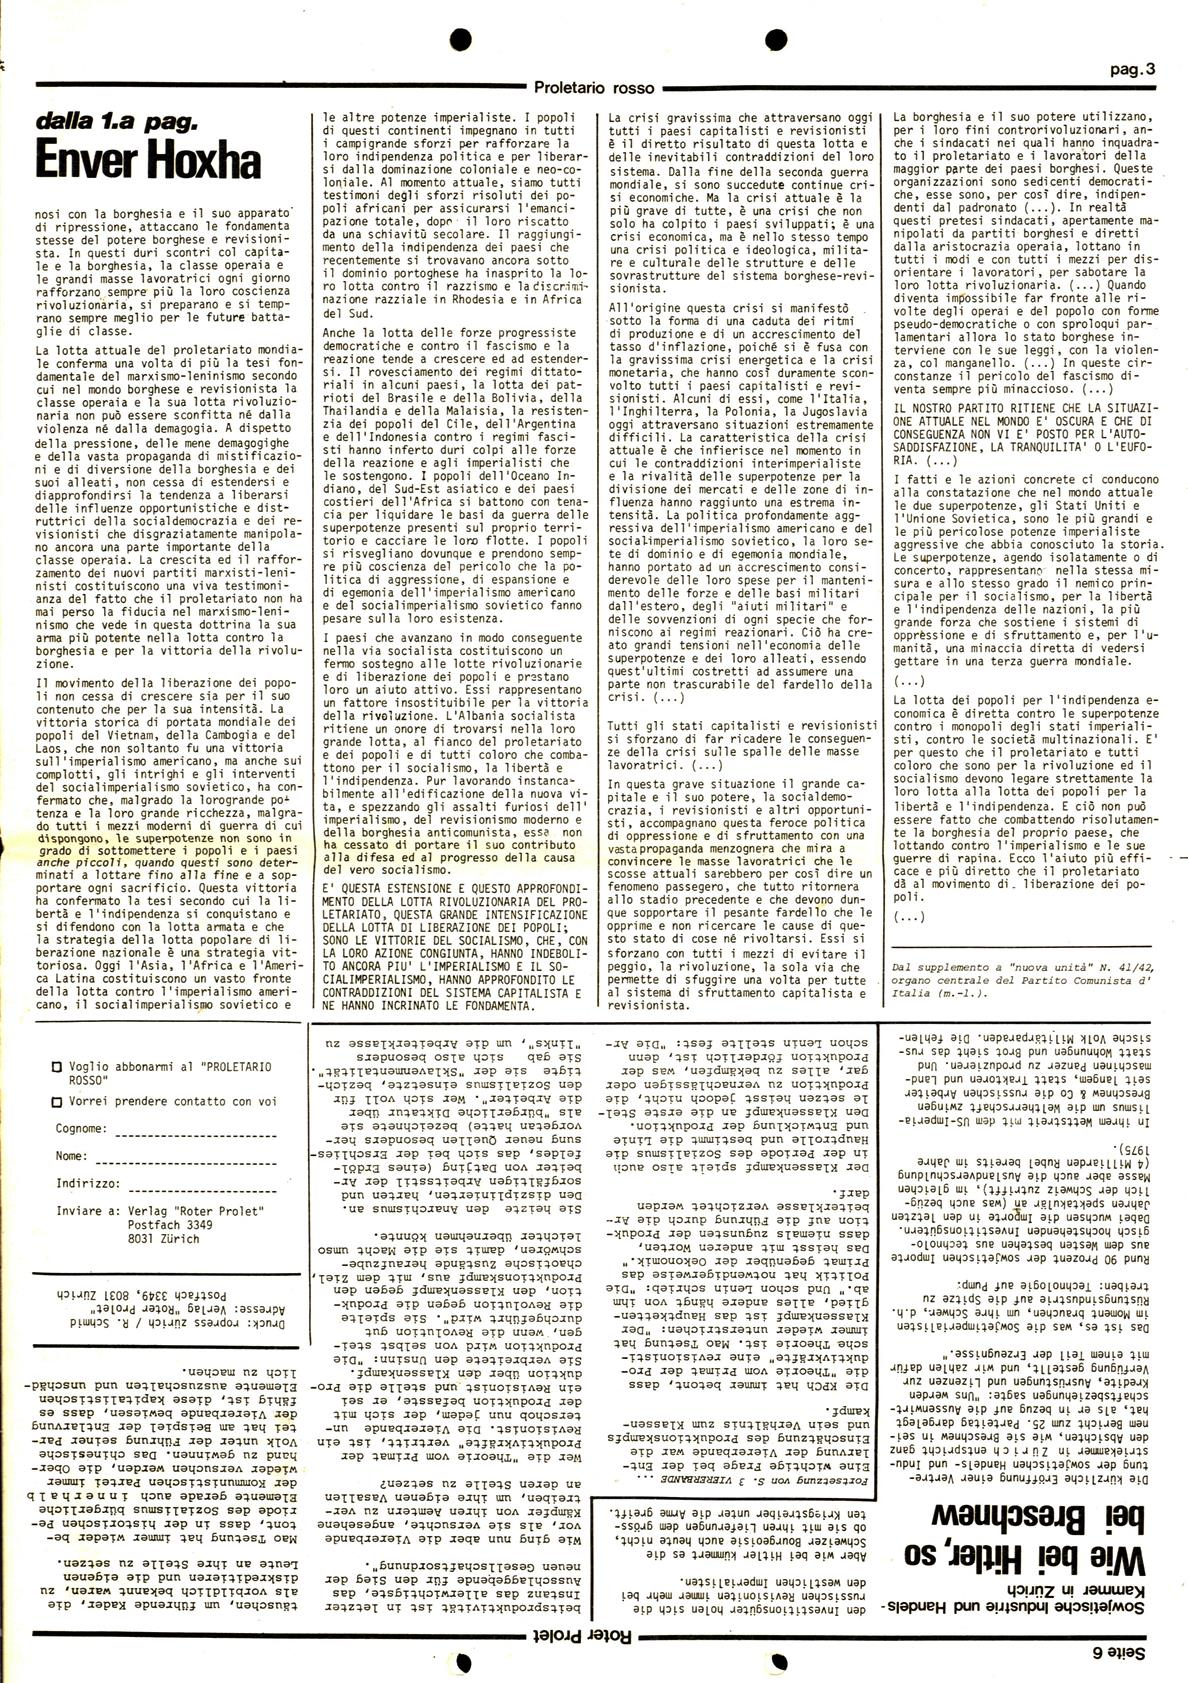 CH_KBML_Roter_Prolet_19770100_09